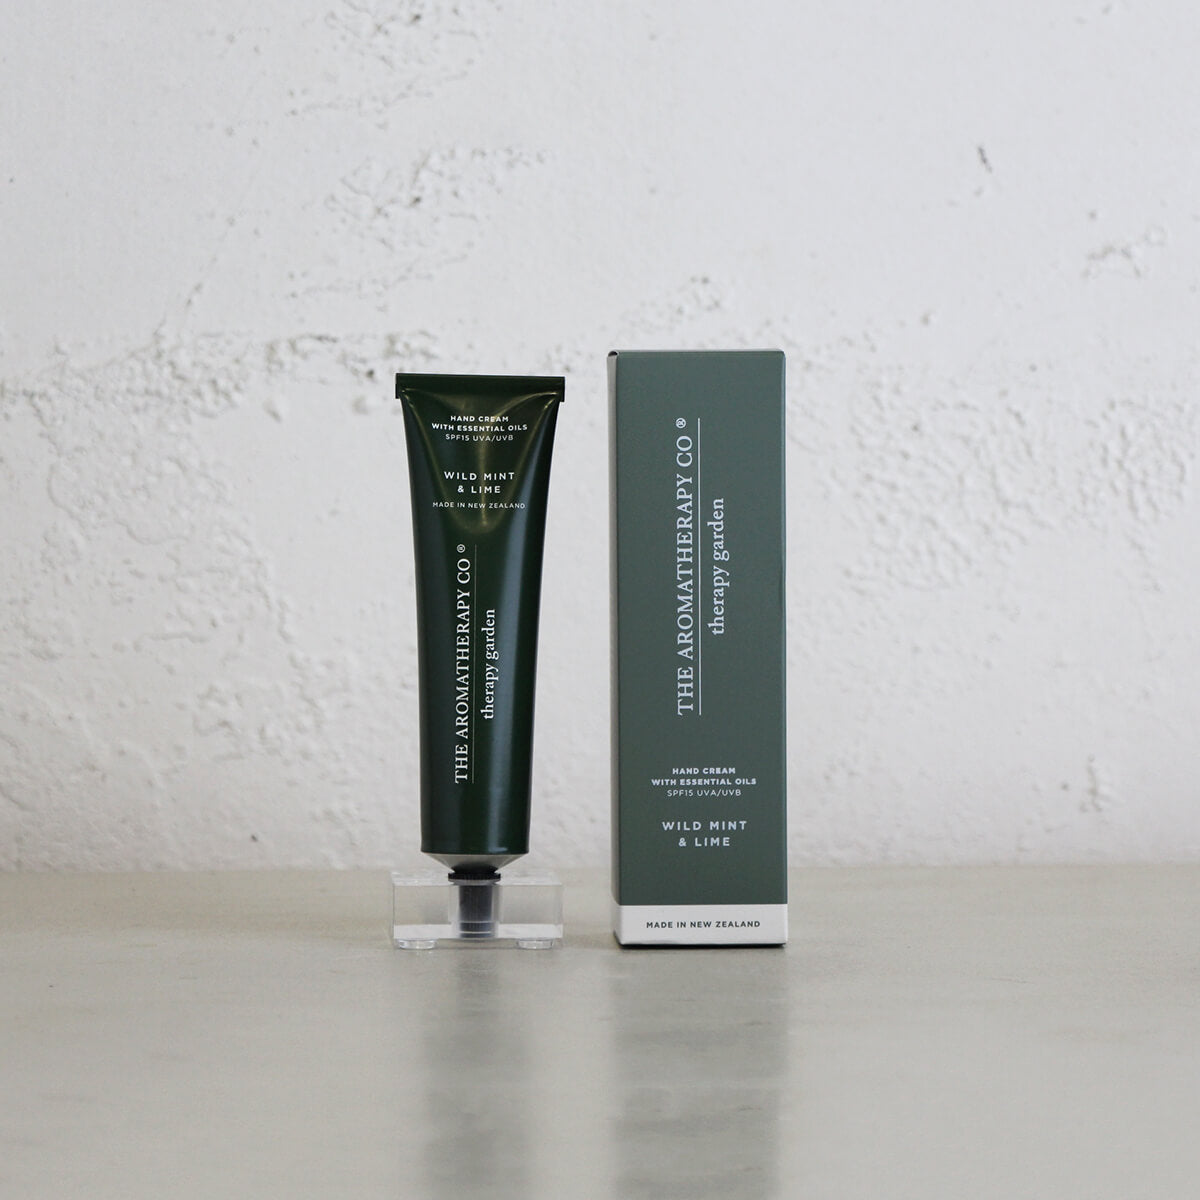 THERAPY GARDEN HAND CREAM  |  WILD MINT + LIME